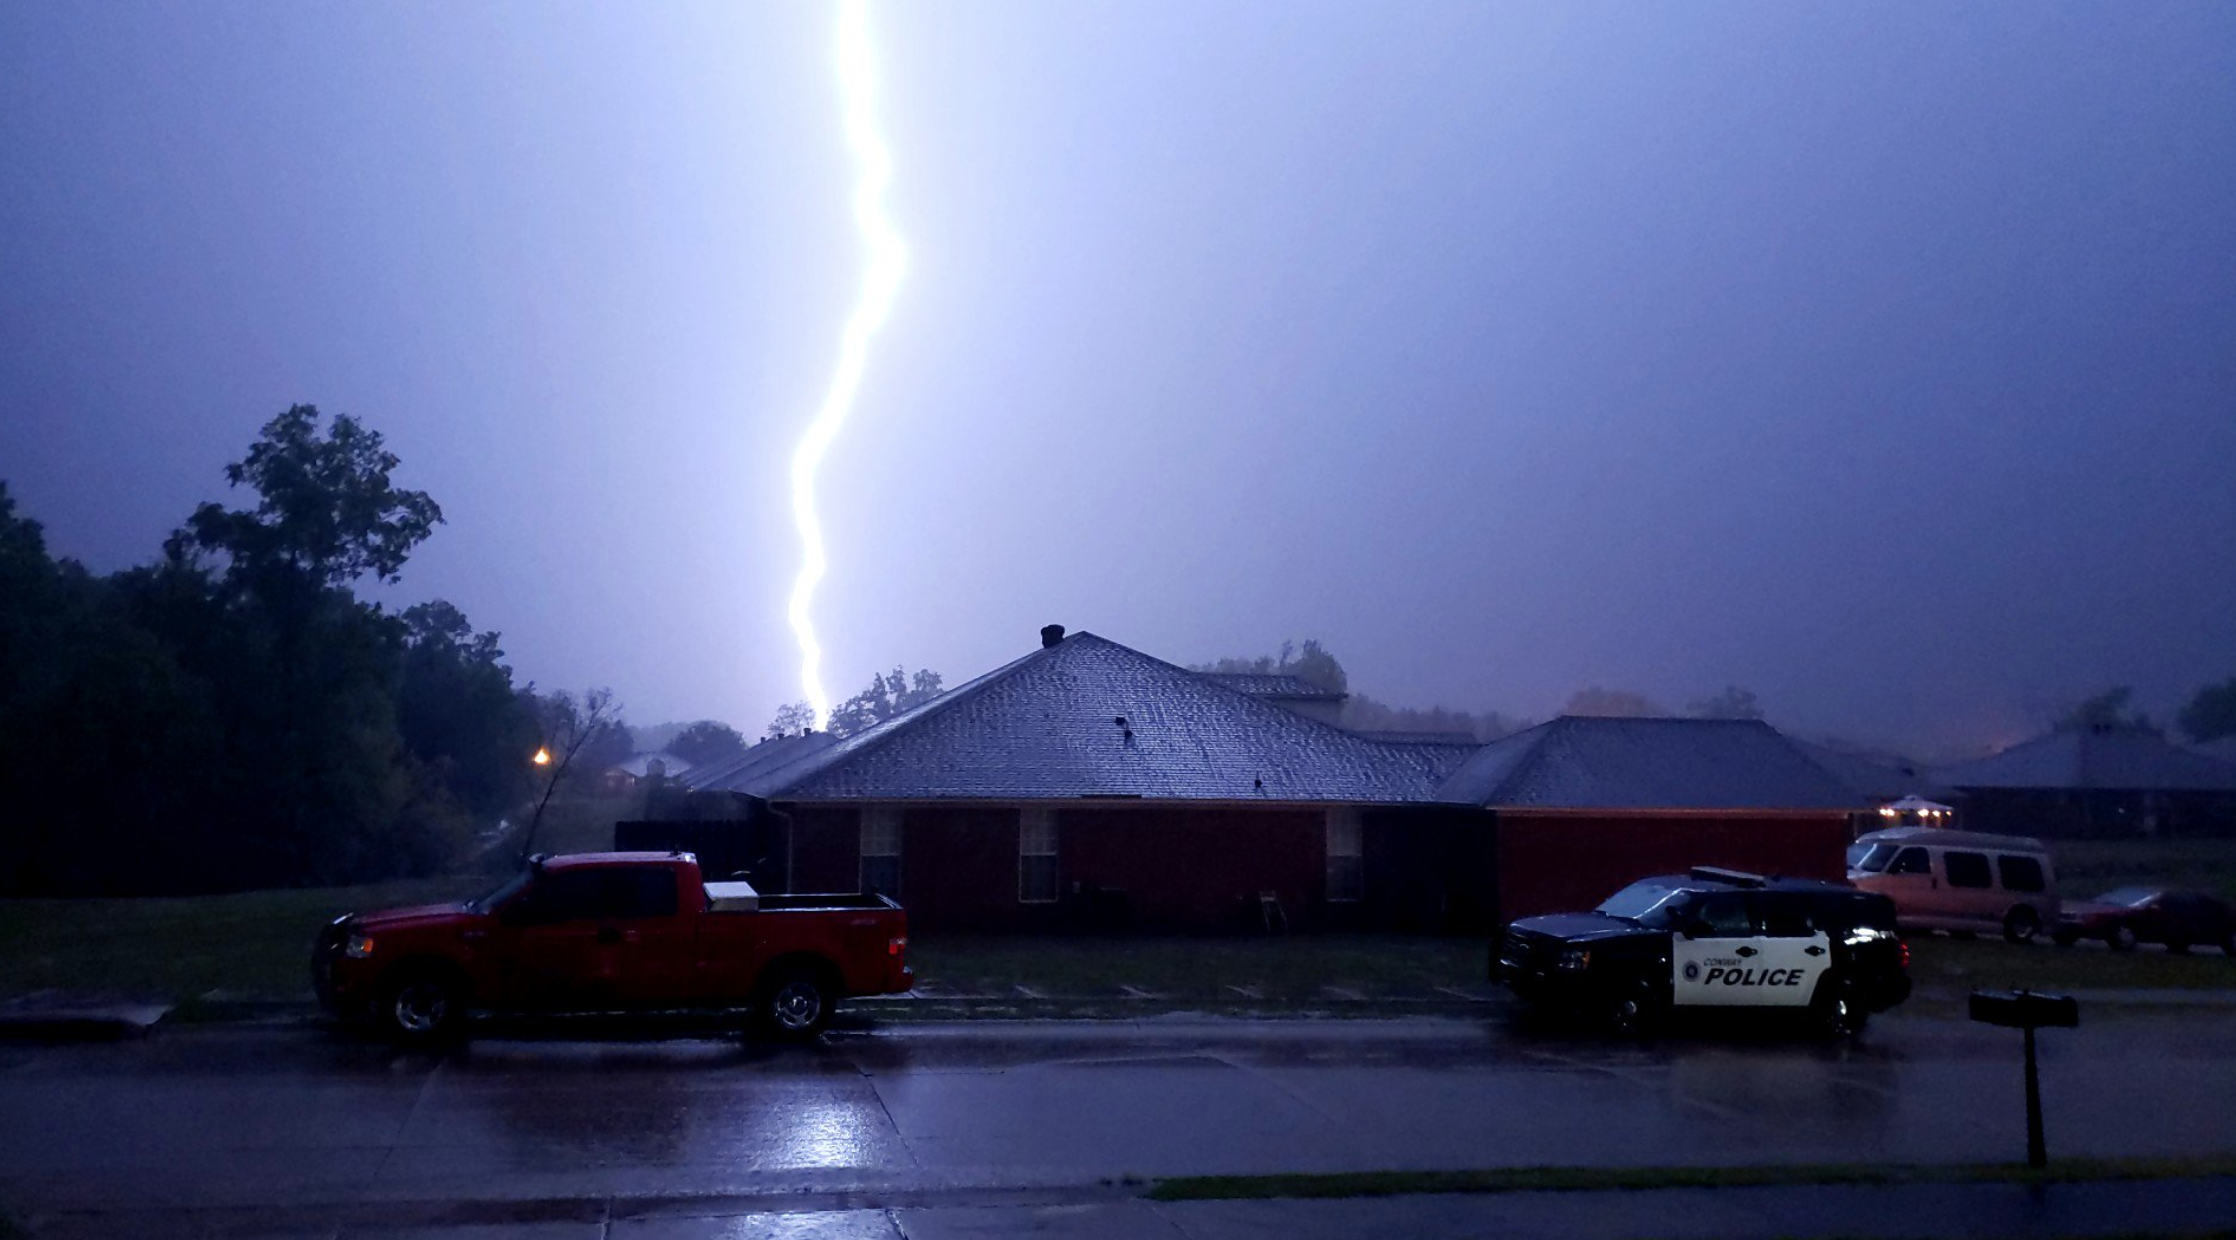 At least 5 dead after 3-day severe weather outbreak slams